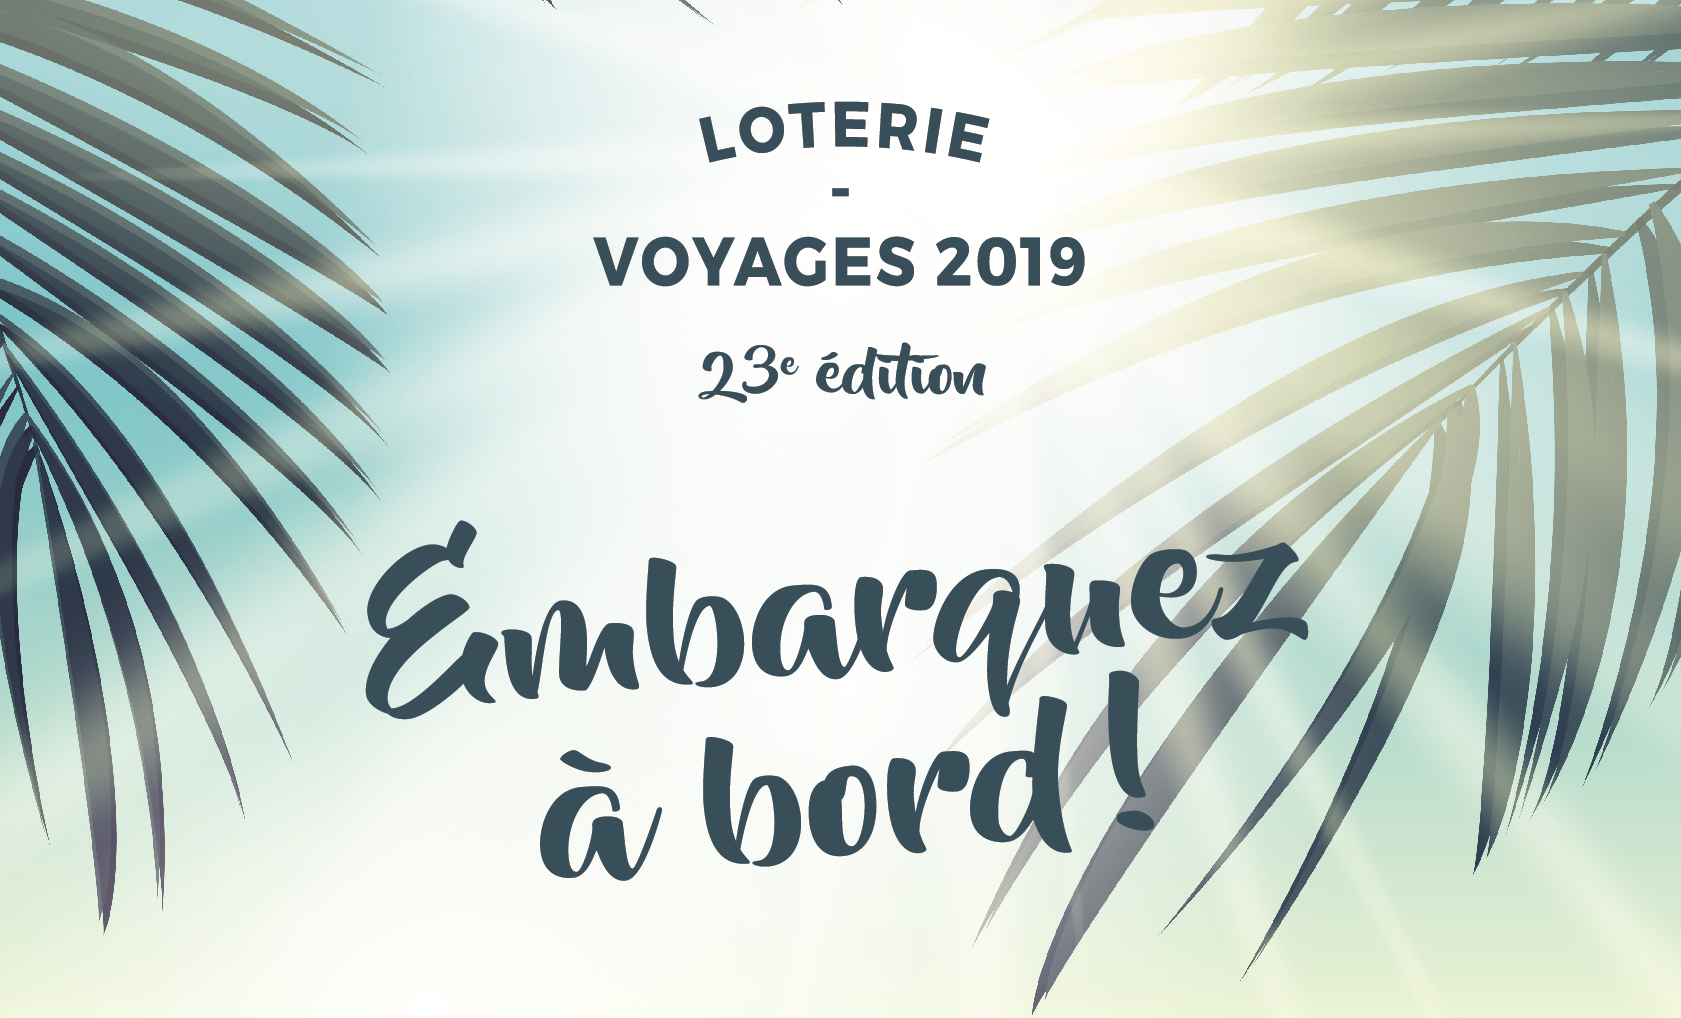 Loterie-Voyages 2019